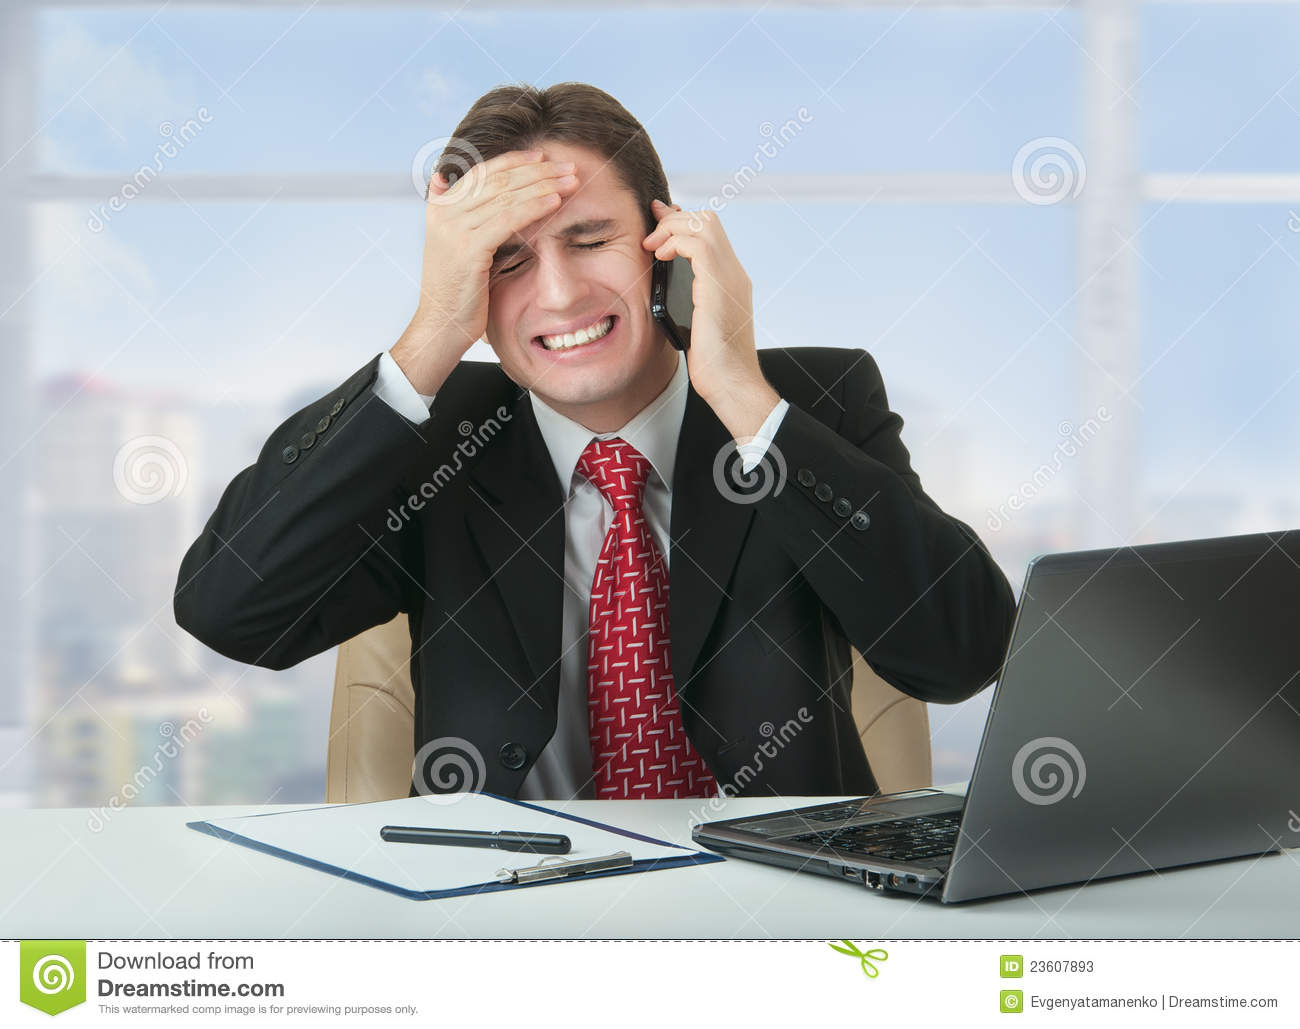 Frustrated Business Man Talking On Phone Stock Image